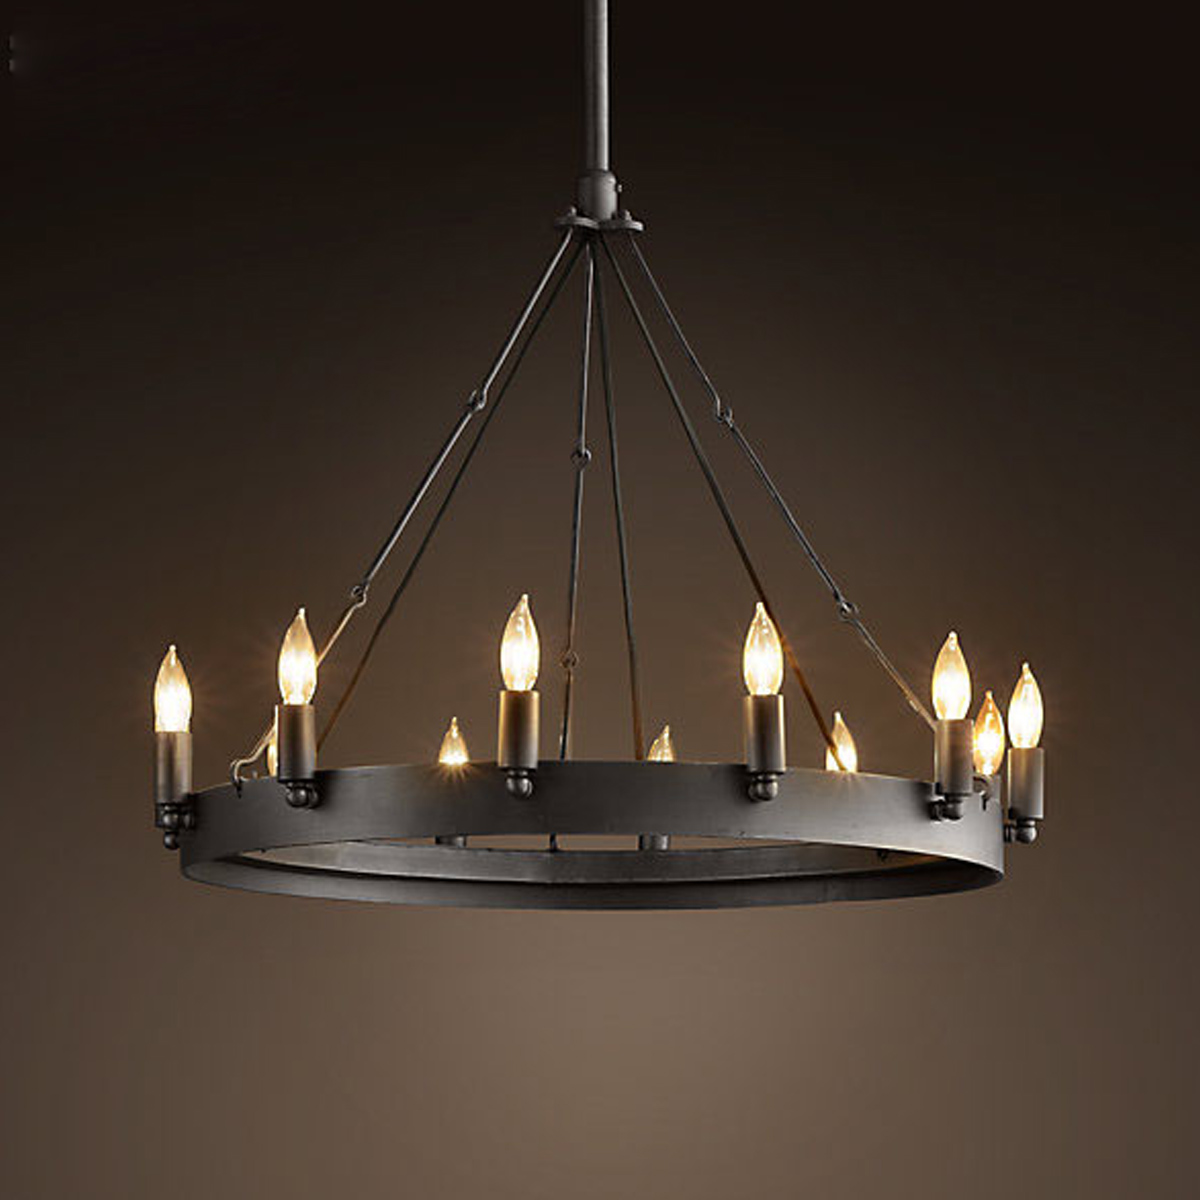 Black iron art round industrial pendant lamps vintage pendant light black iron art round industrial pendant lamps vintage pendant light hanging light restaurant bar home living room fixture lighti in pendant lights from arubaitofo Gallery